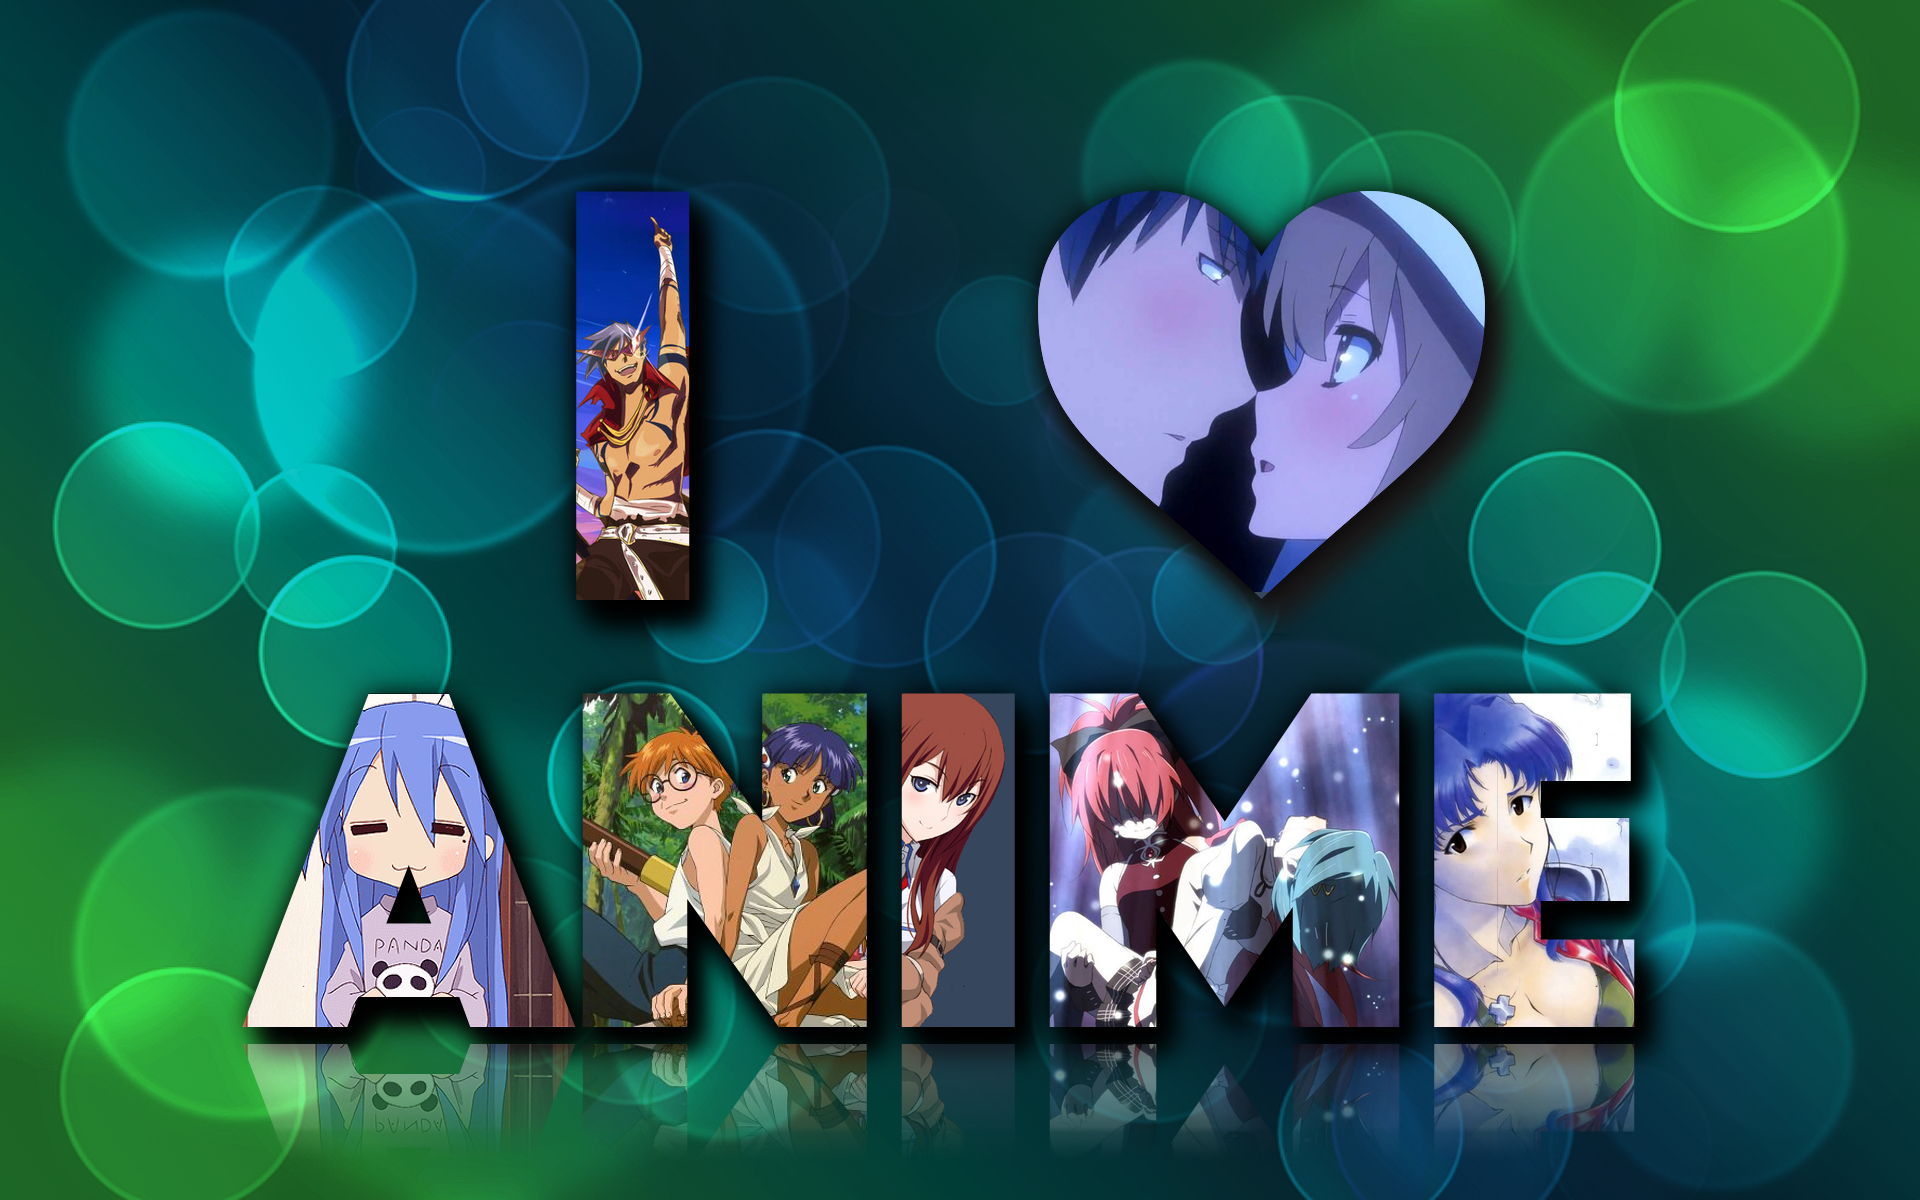 Wallpaper cartoon Anime Love : I love anime wallpaper by alessiole on DeviantArt